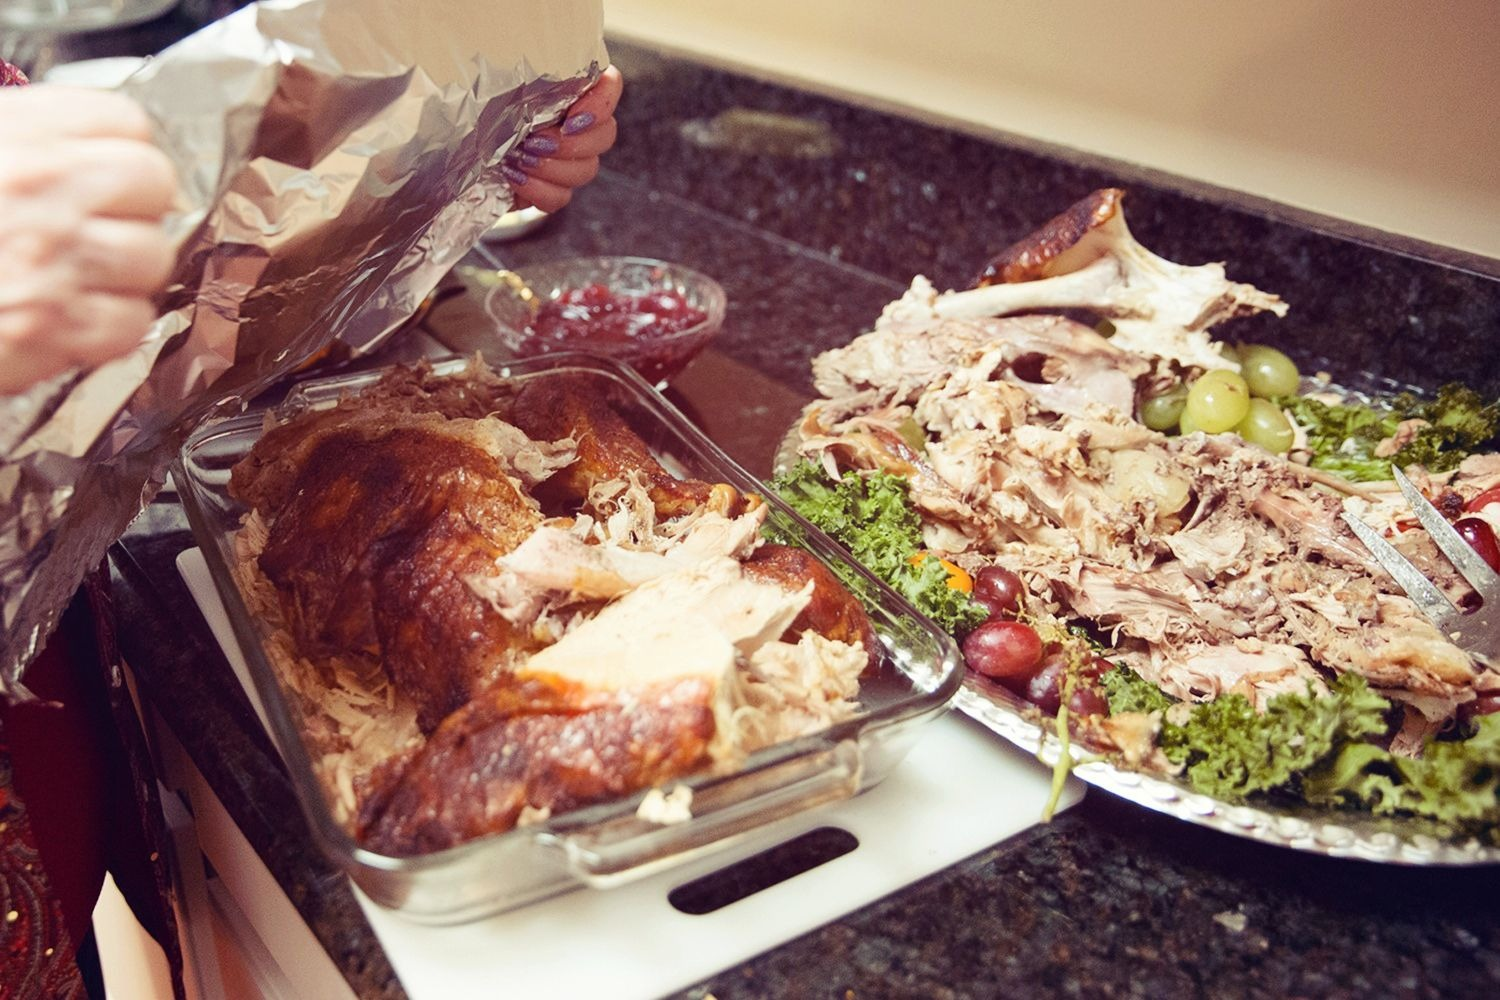 Making the Most of Holiday Leftovers